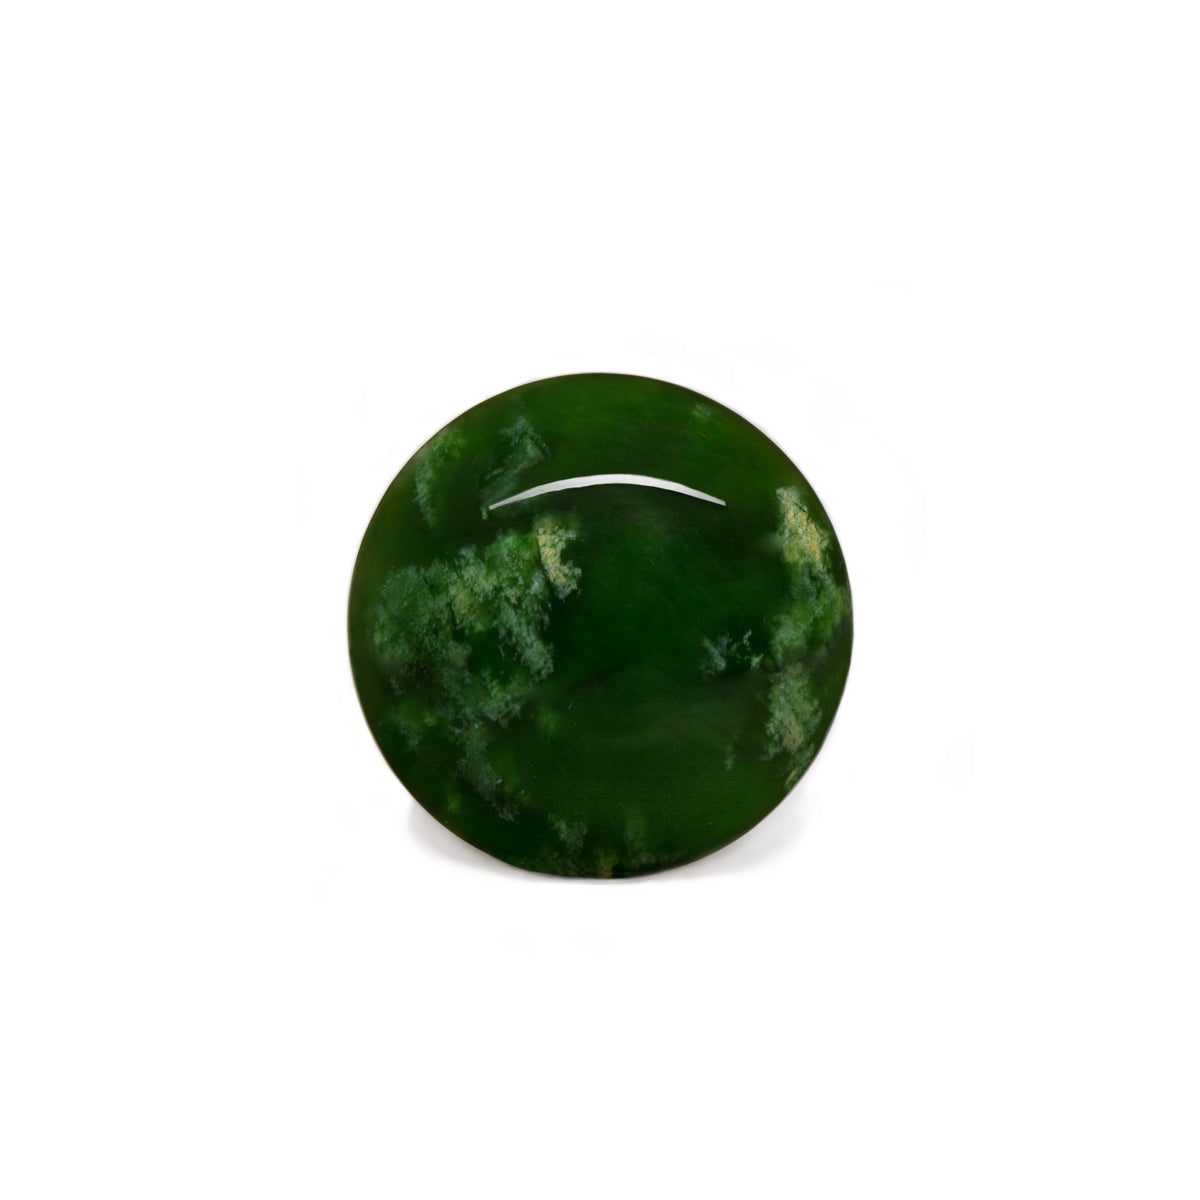 N - 36mm / New Zealand Pounamu // JD2019-7